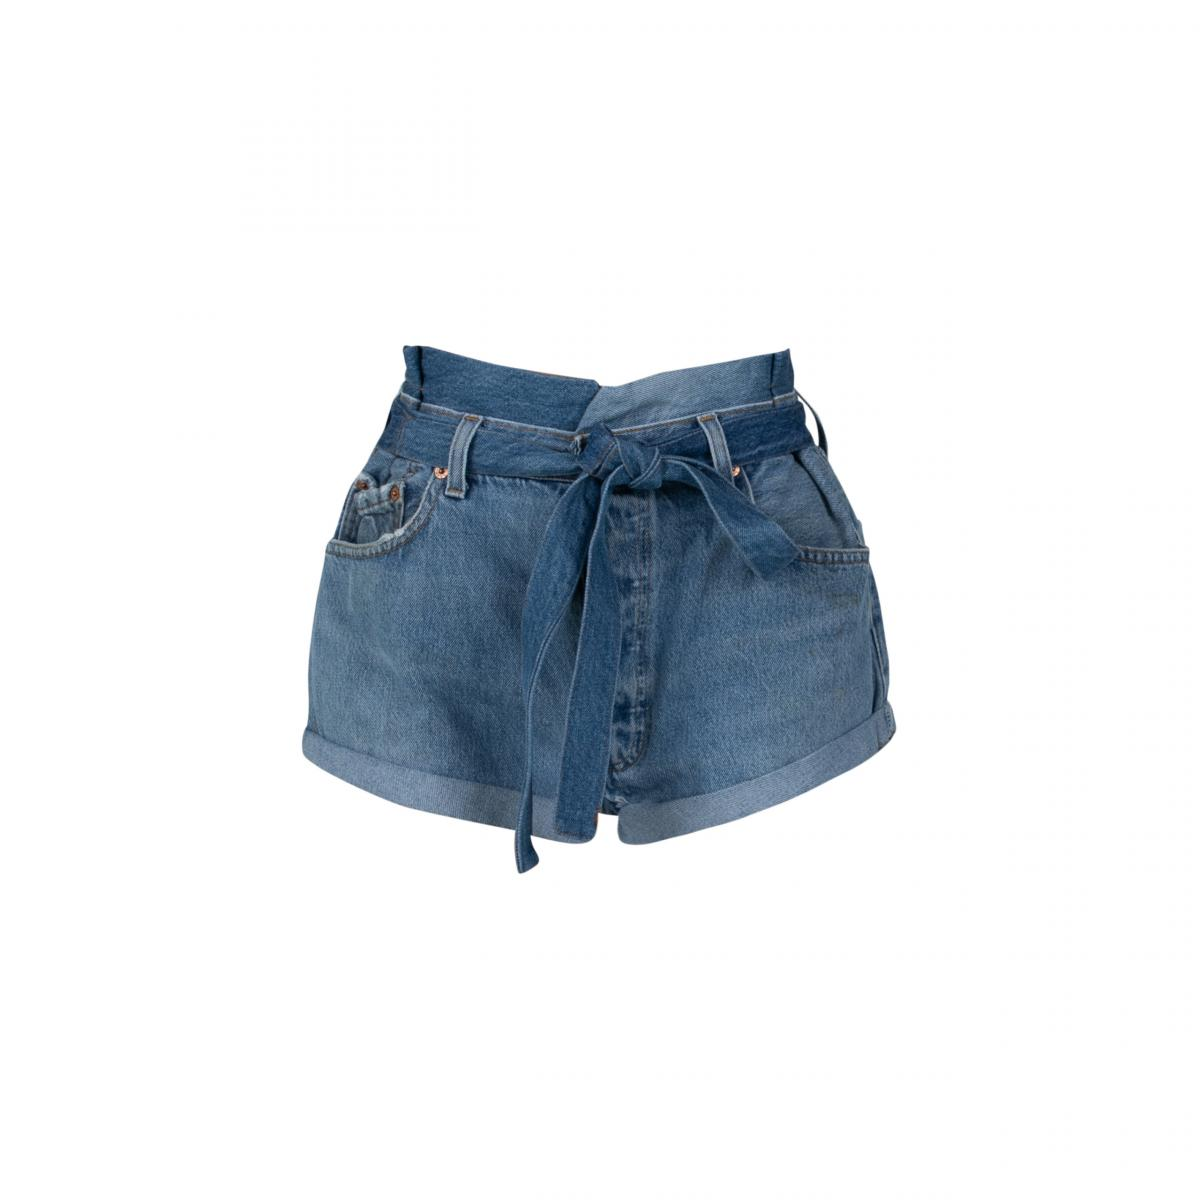 Paperbag Shorts by EB Denim, available on ebdenim.com for $185 Hailey Baldwin Shorts SIMILAR PRODUCT